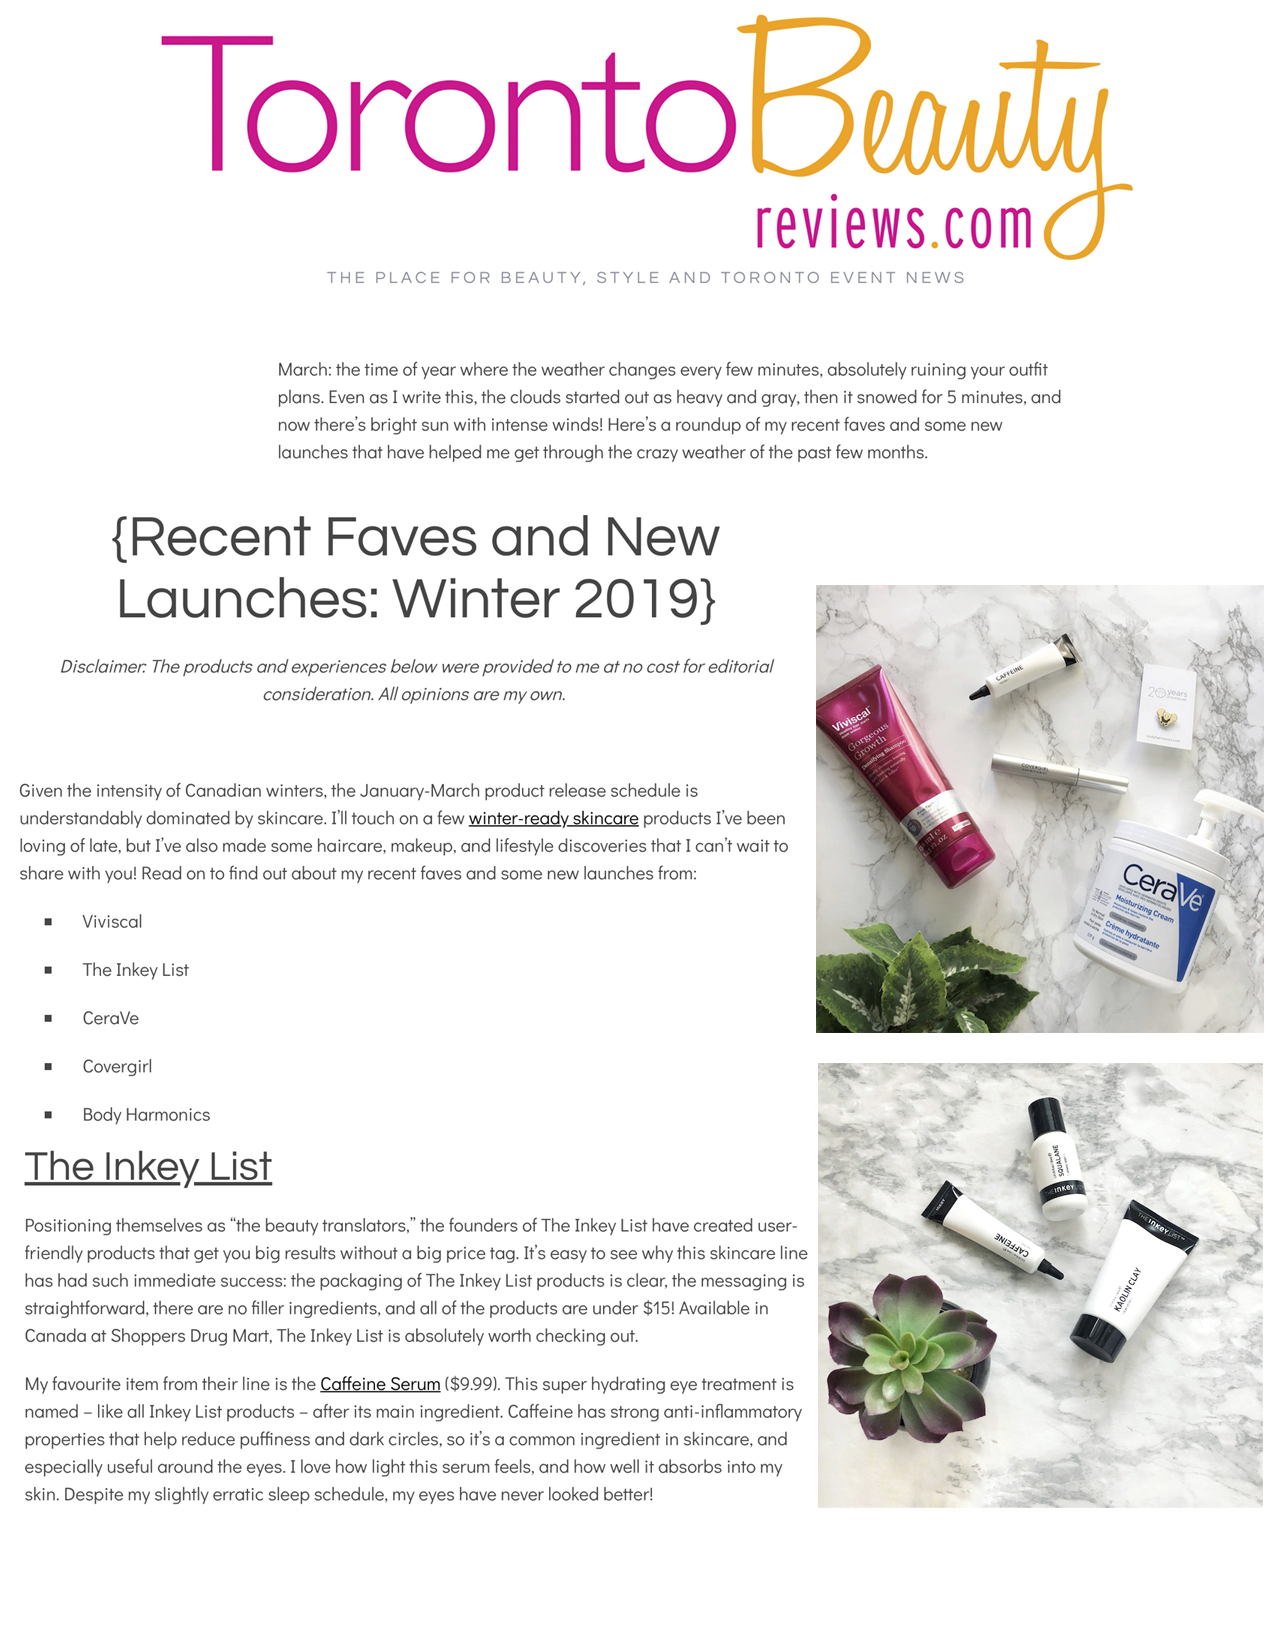 The InKey List featured on  Toronto Beauty Reviews .